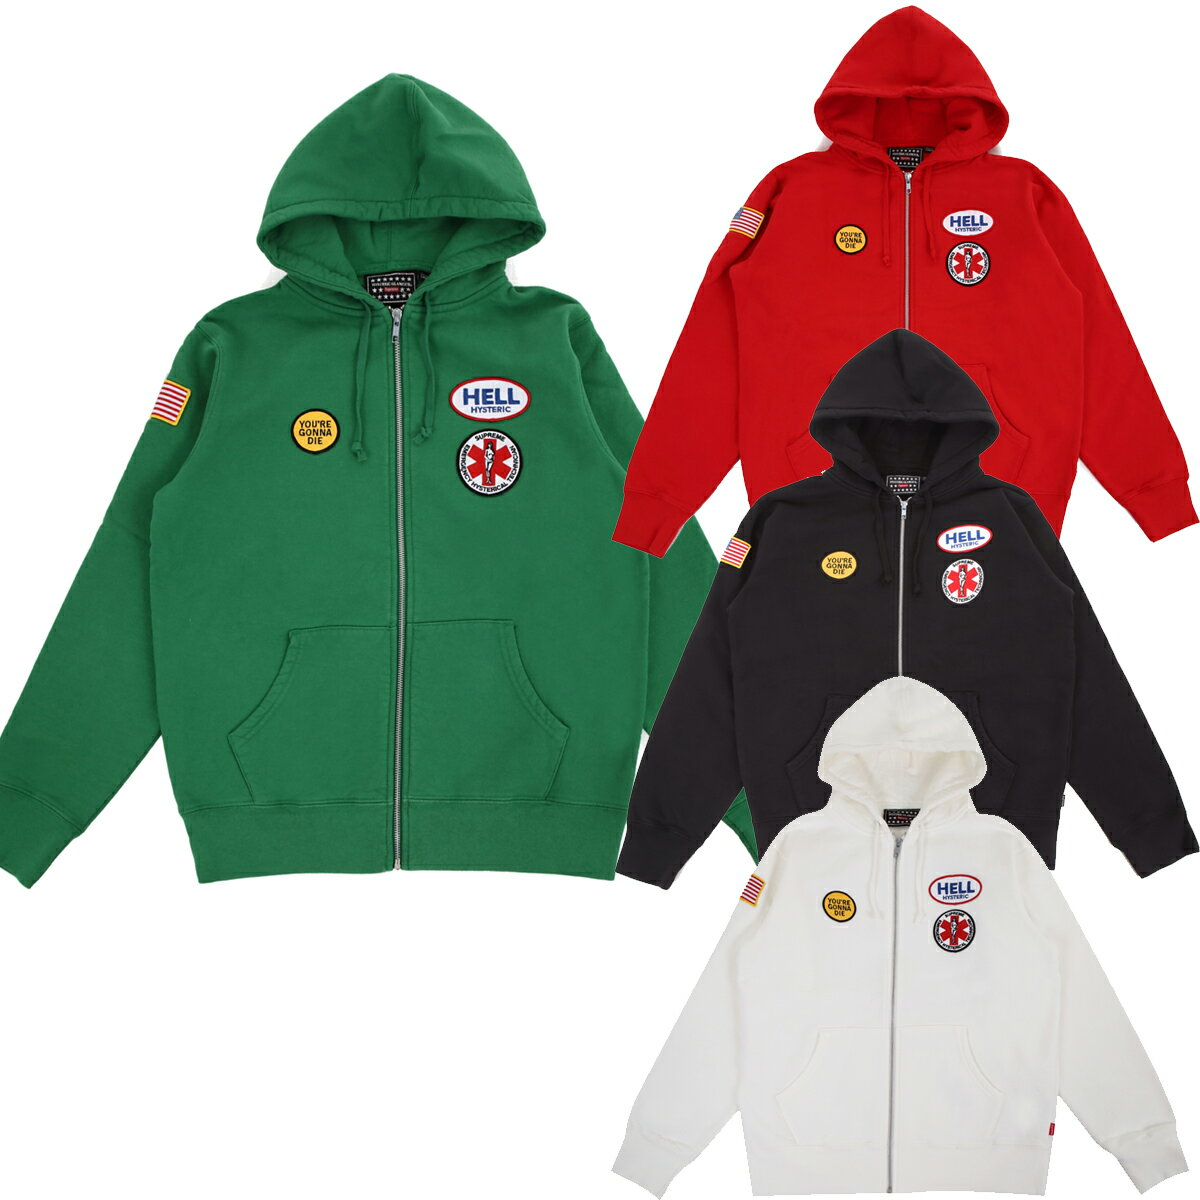 SUPREME x Hysteric Glamour シュプリーム x ヒステリックグラマーPatches Zip Up Sweat Shirtアメリカ ニューヨーク直営店買付分【あす楽対応_関東】